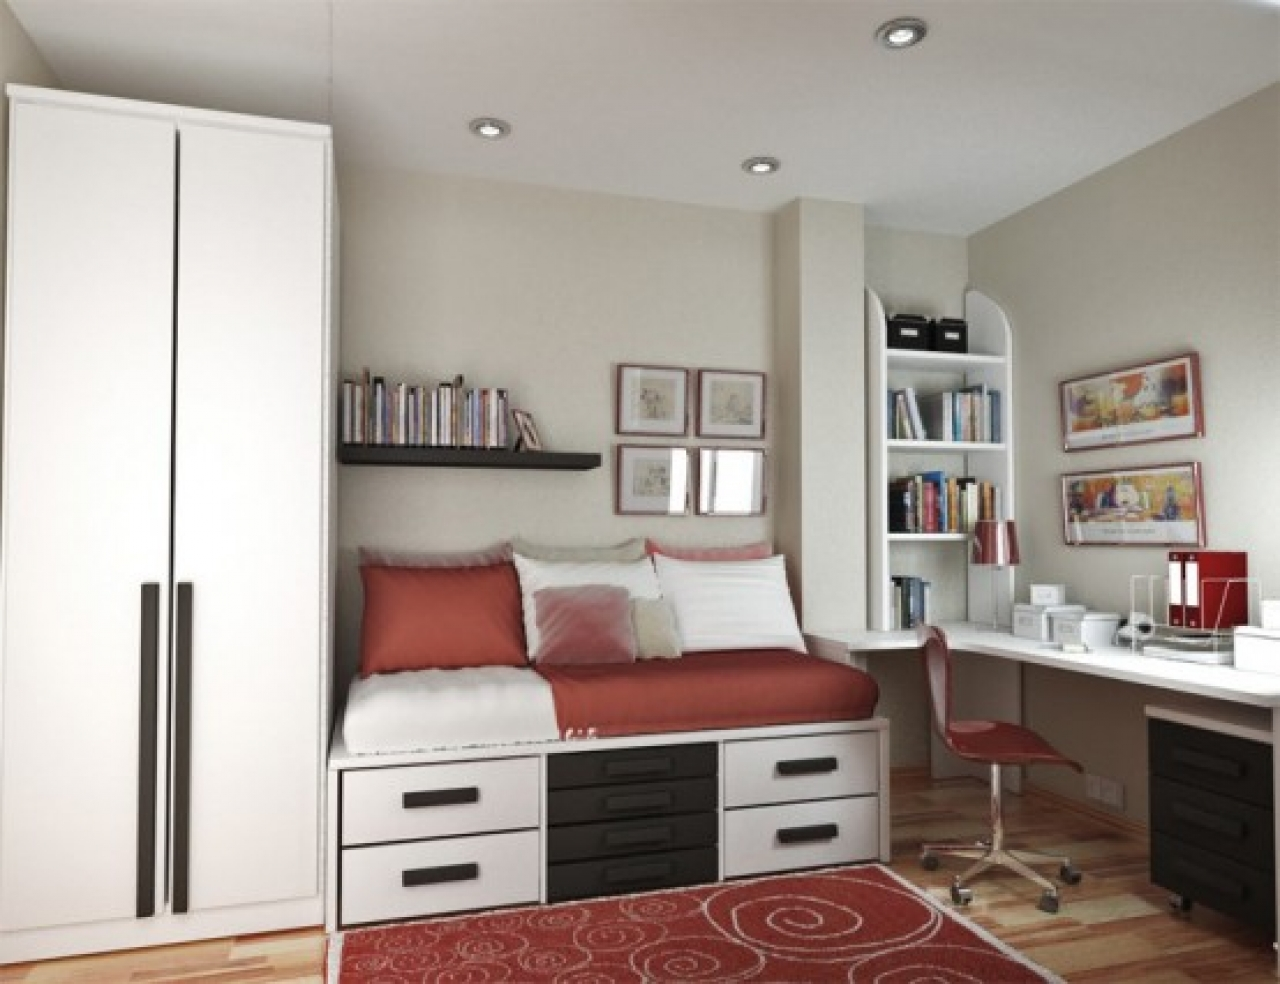 Simple Bedroom Ideas Turn to Colors